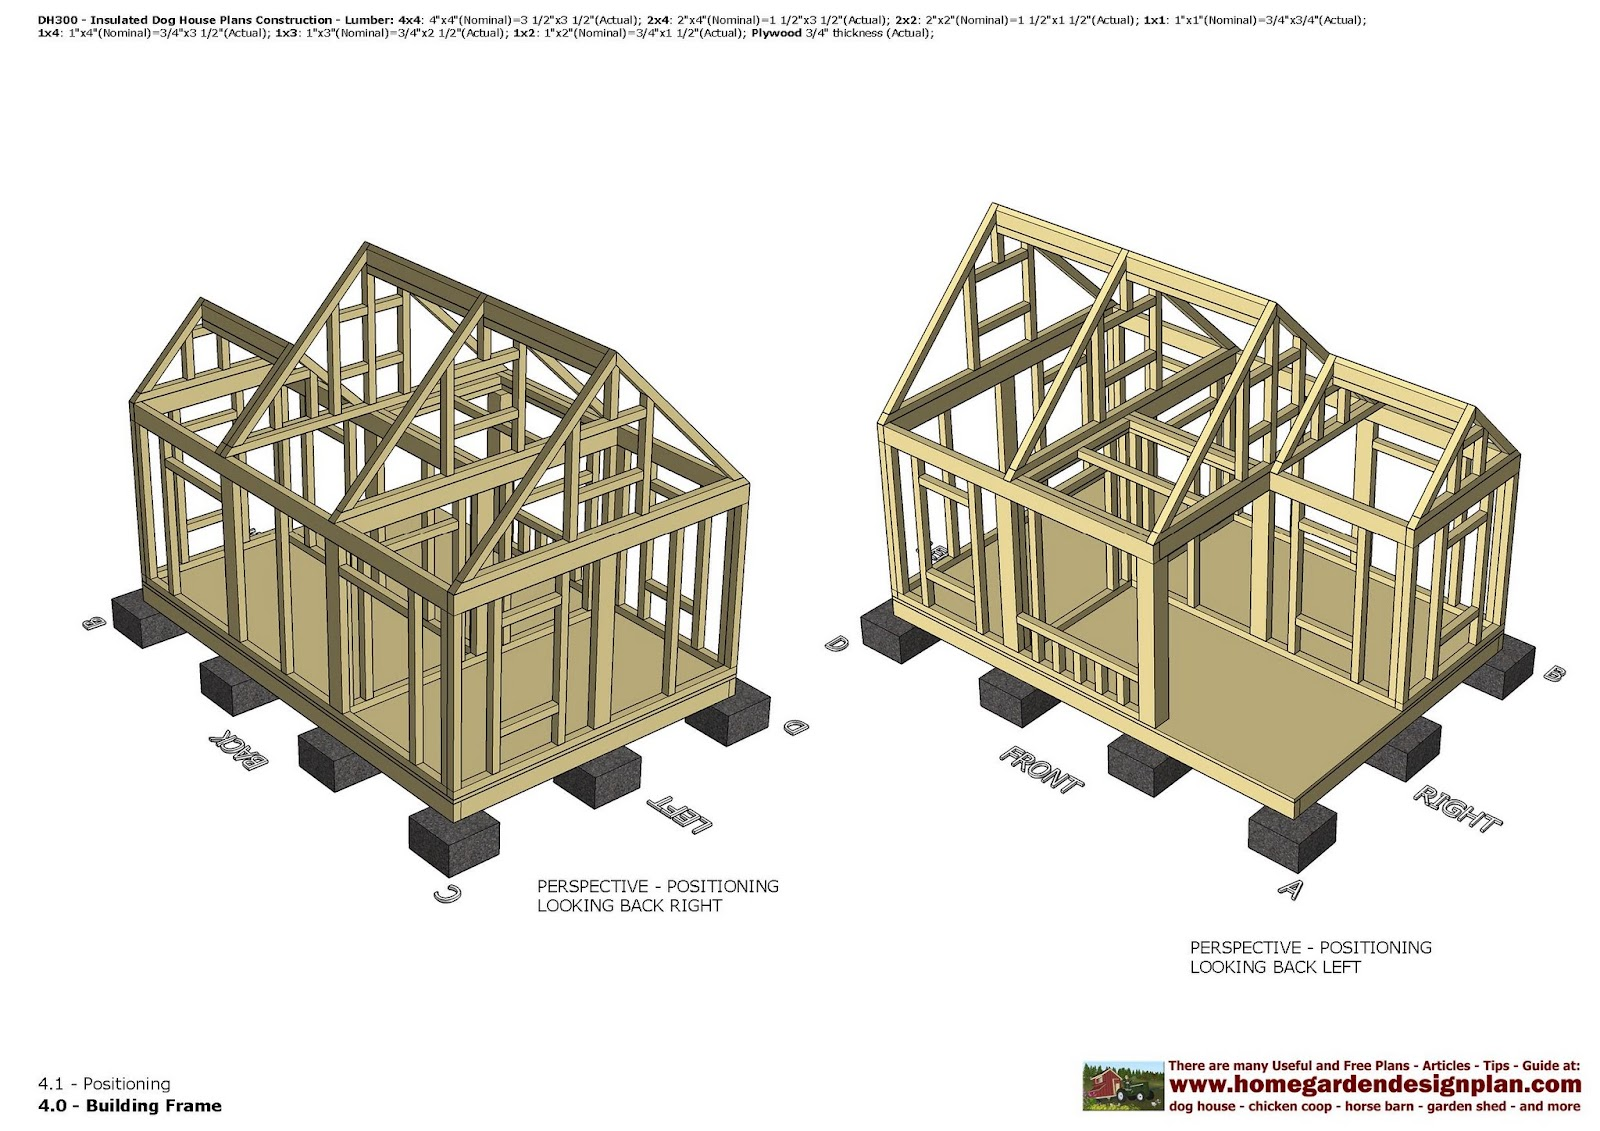 Home garden plans dh300 insulated dog house plans for Kennel construction plans